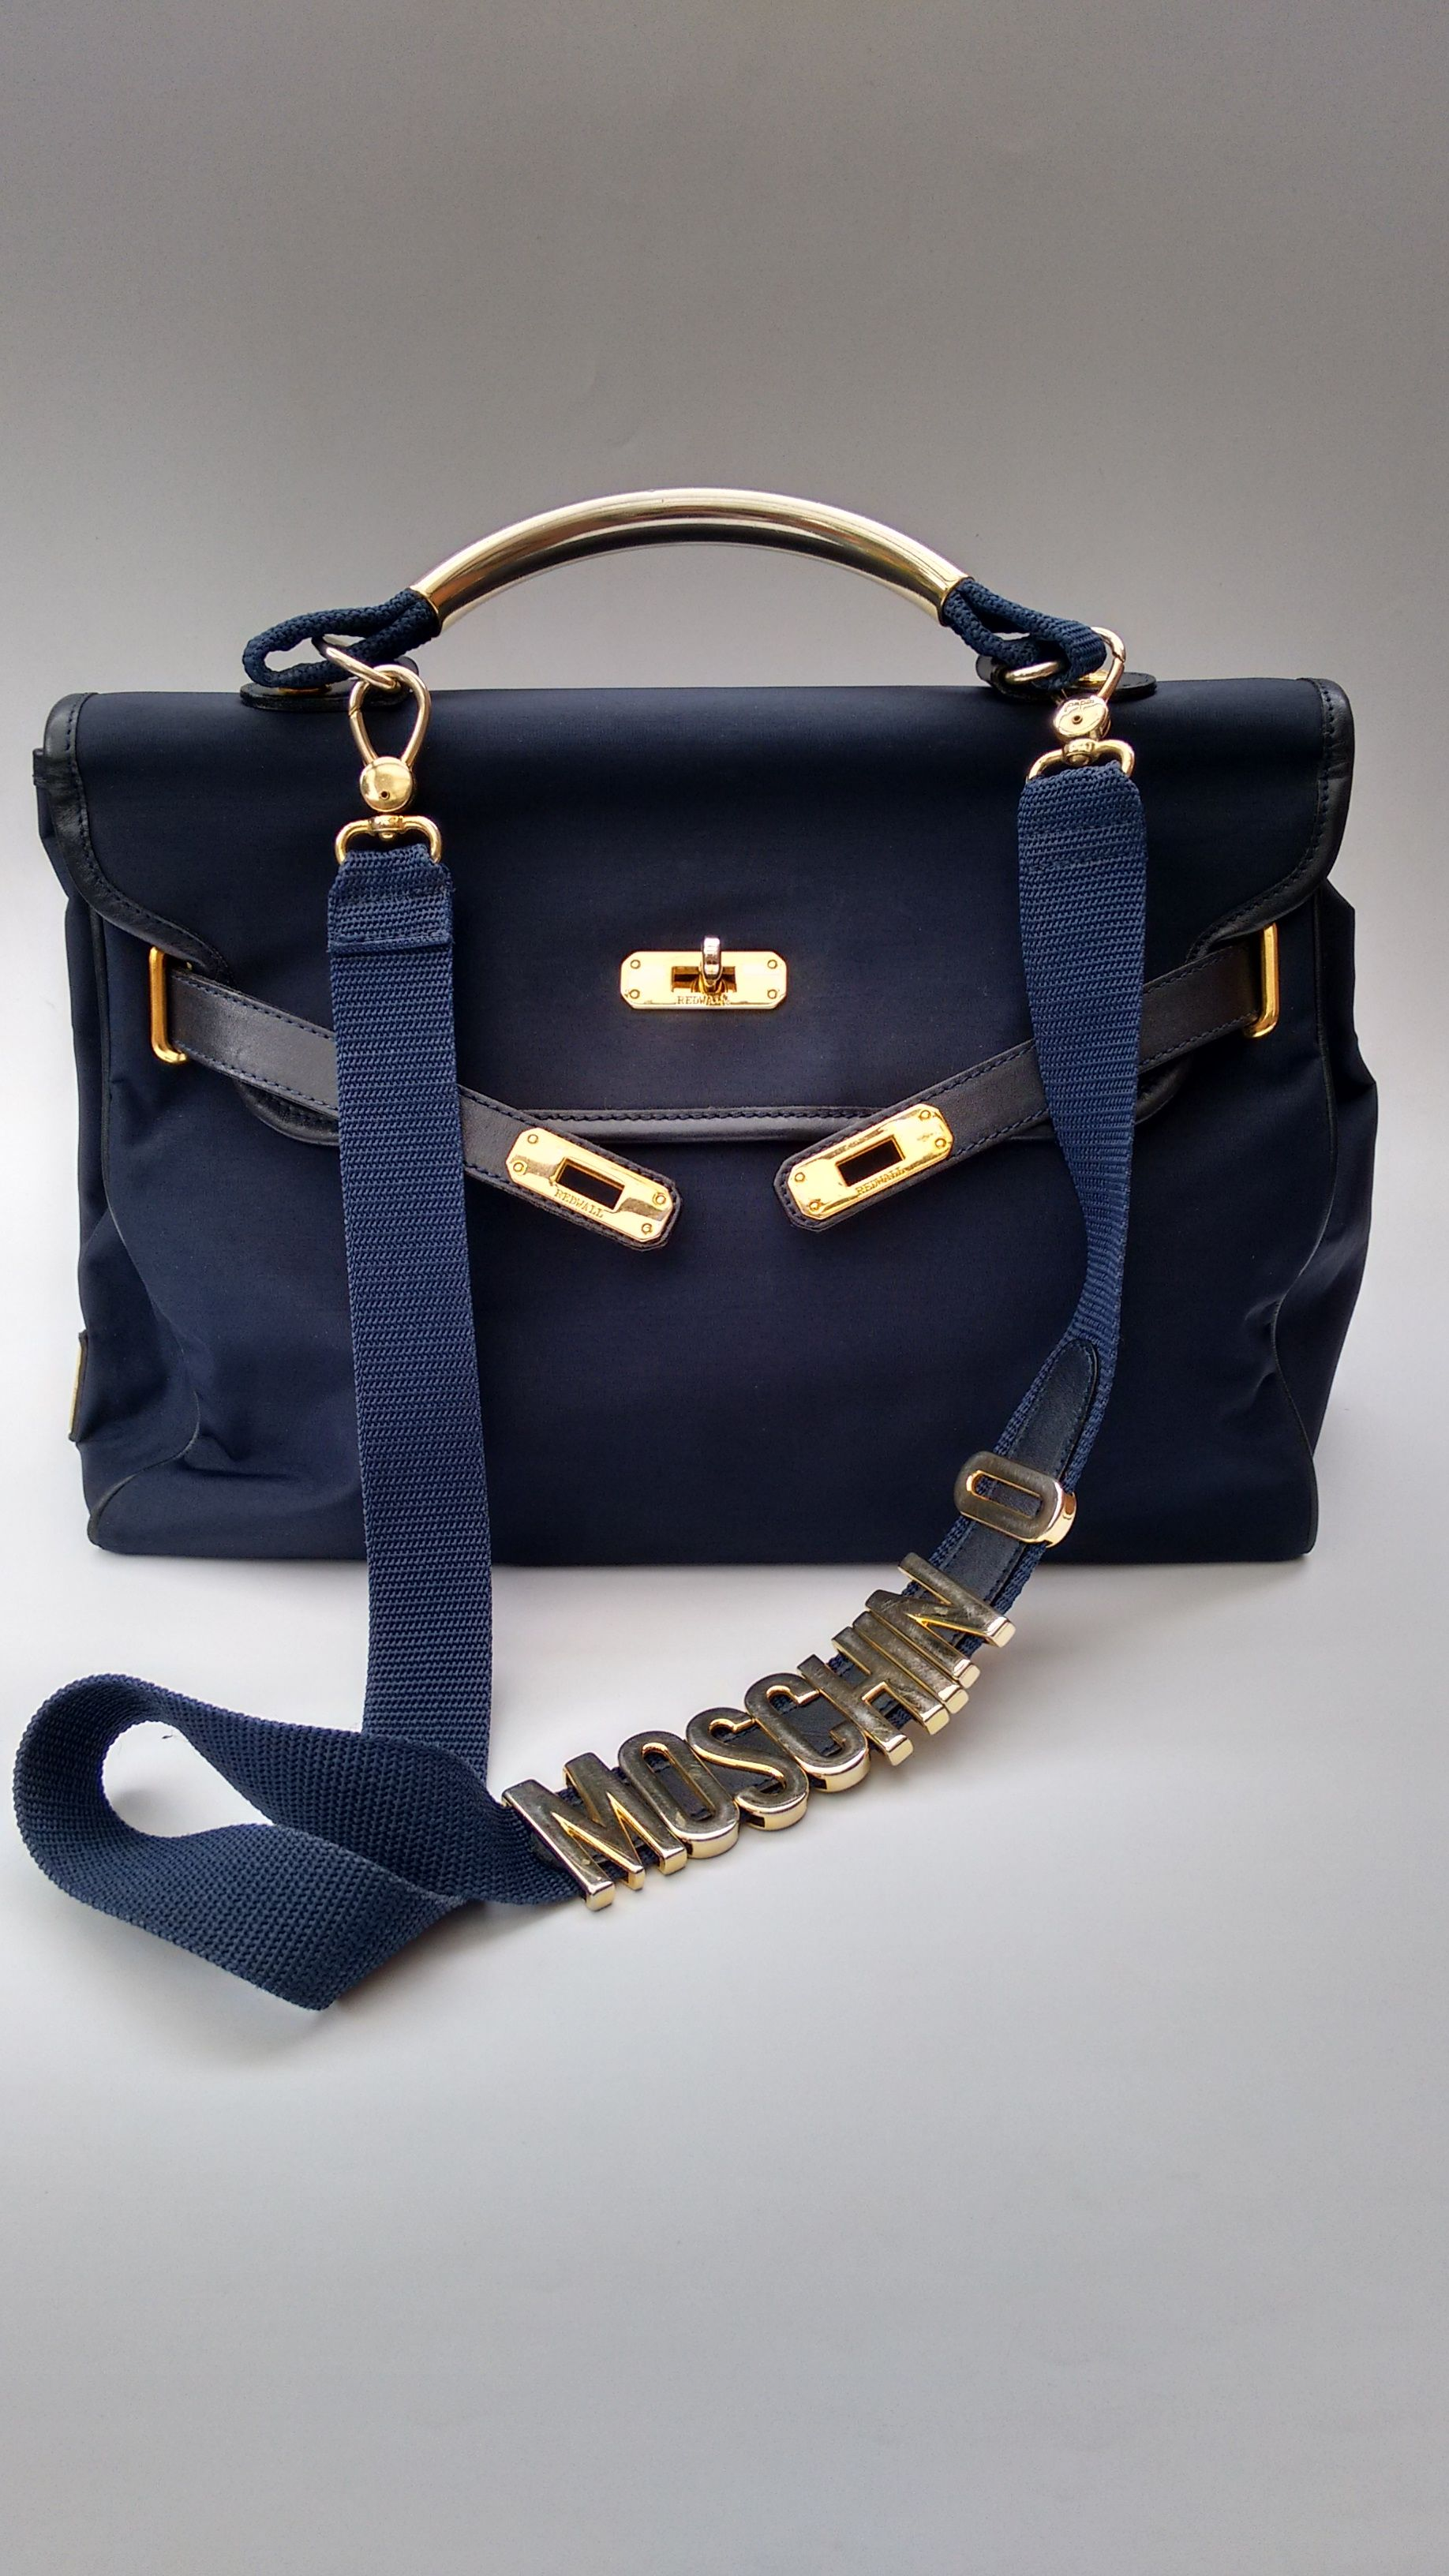 2de05d0fa62 MOSCHINO Bag. Moschino by Redwall Vintage Navy Birkin Kelly Style Shoulder  bag with detachable strap . Italian designer purse